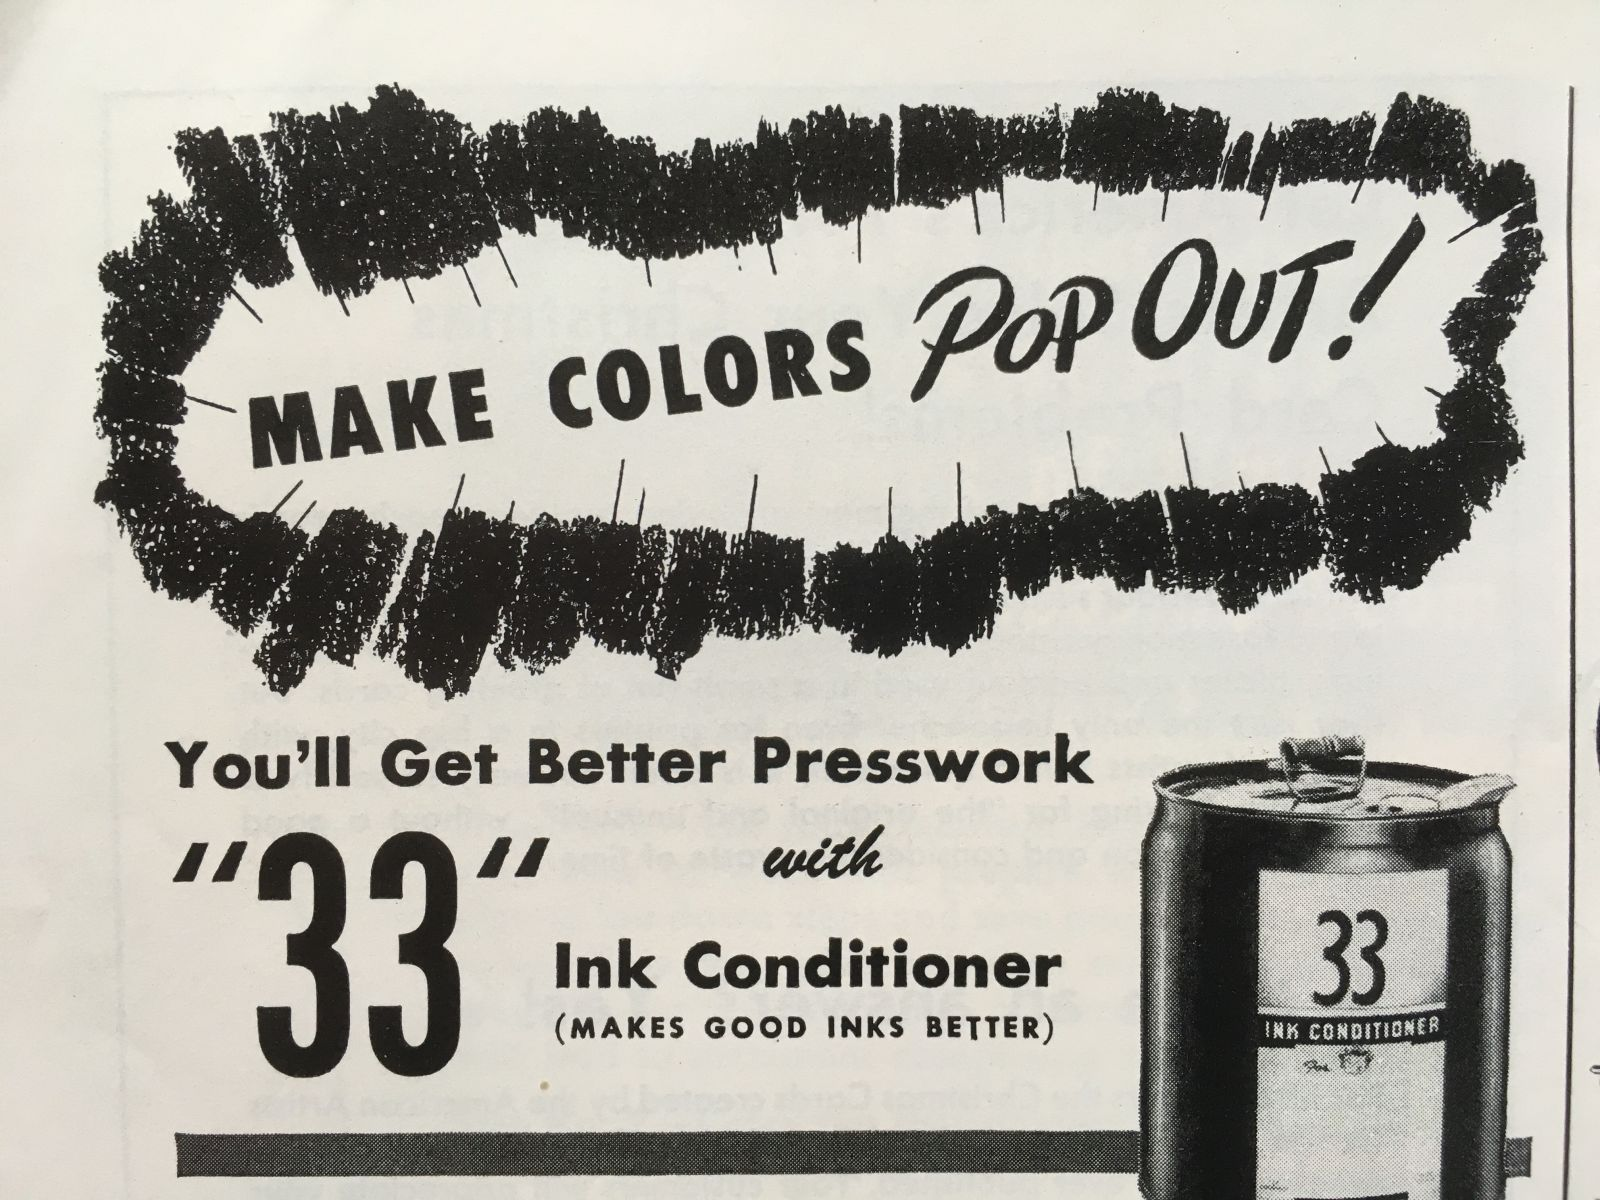 Central Compounding Co. ad: Make Colors Pop Out!   Flickr